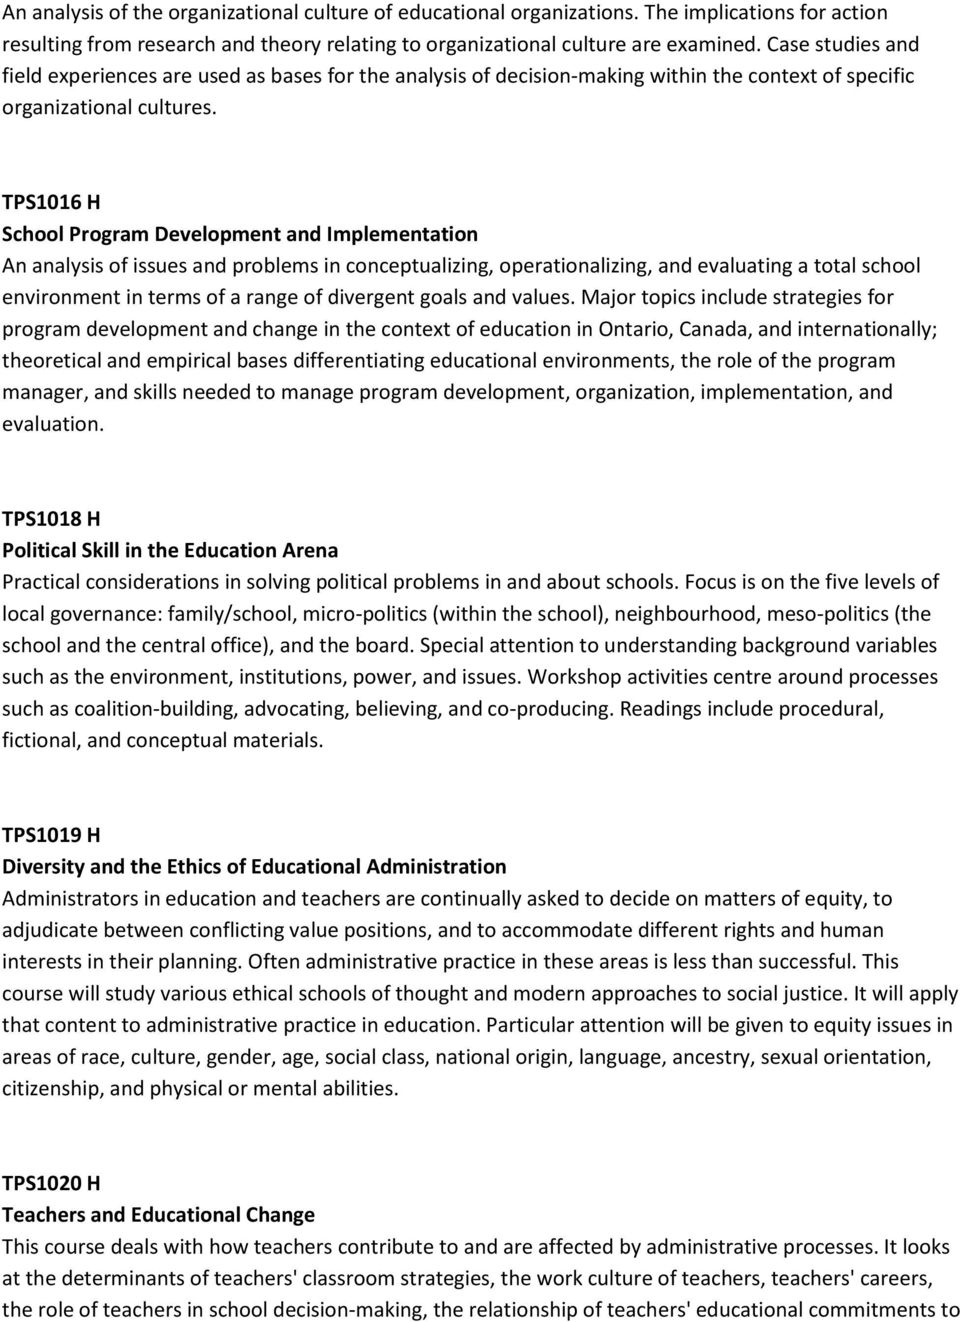 TPS1016 H School Program Development and Implementation An analysis of issues and problems in conceptualizing, operationalizing, and evaluating a total school environment in terms of a range of